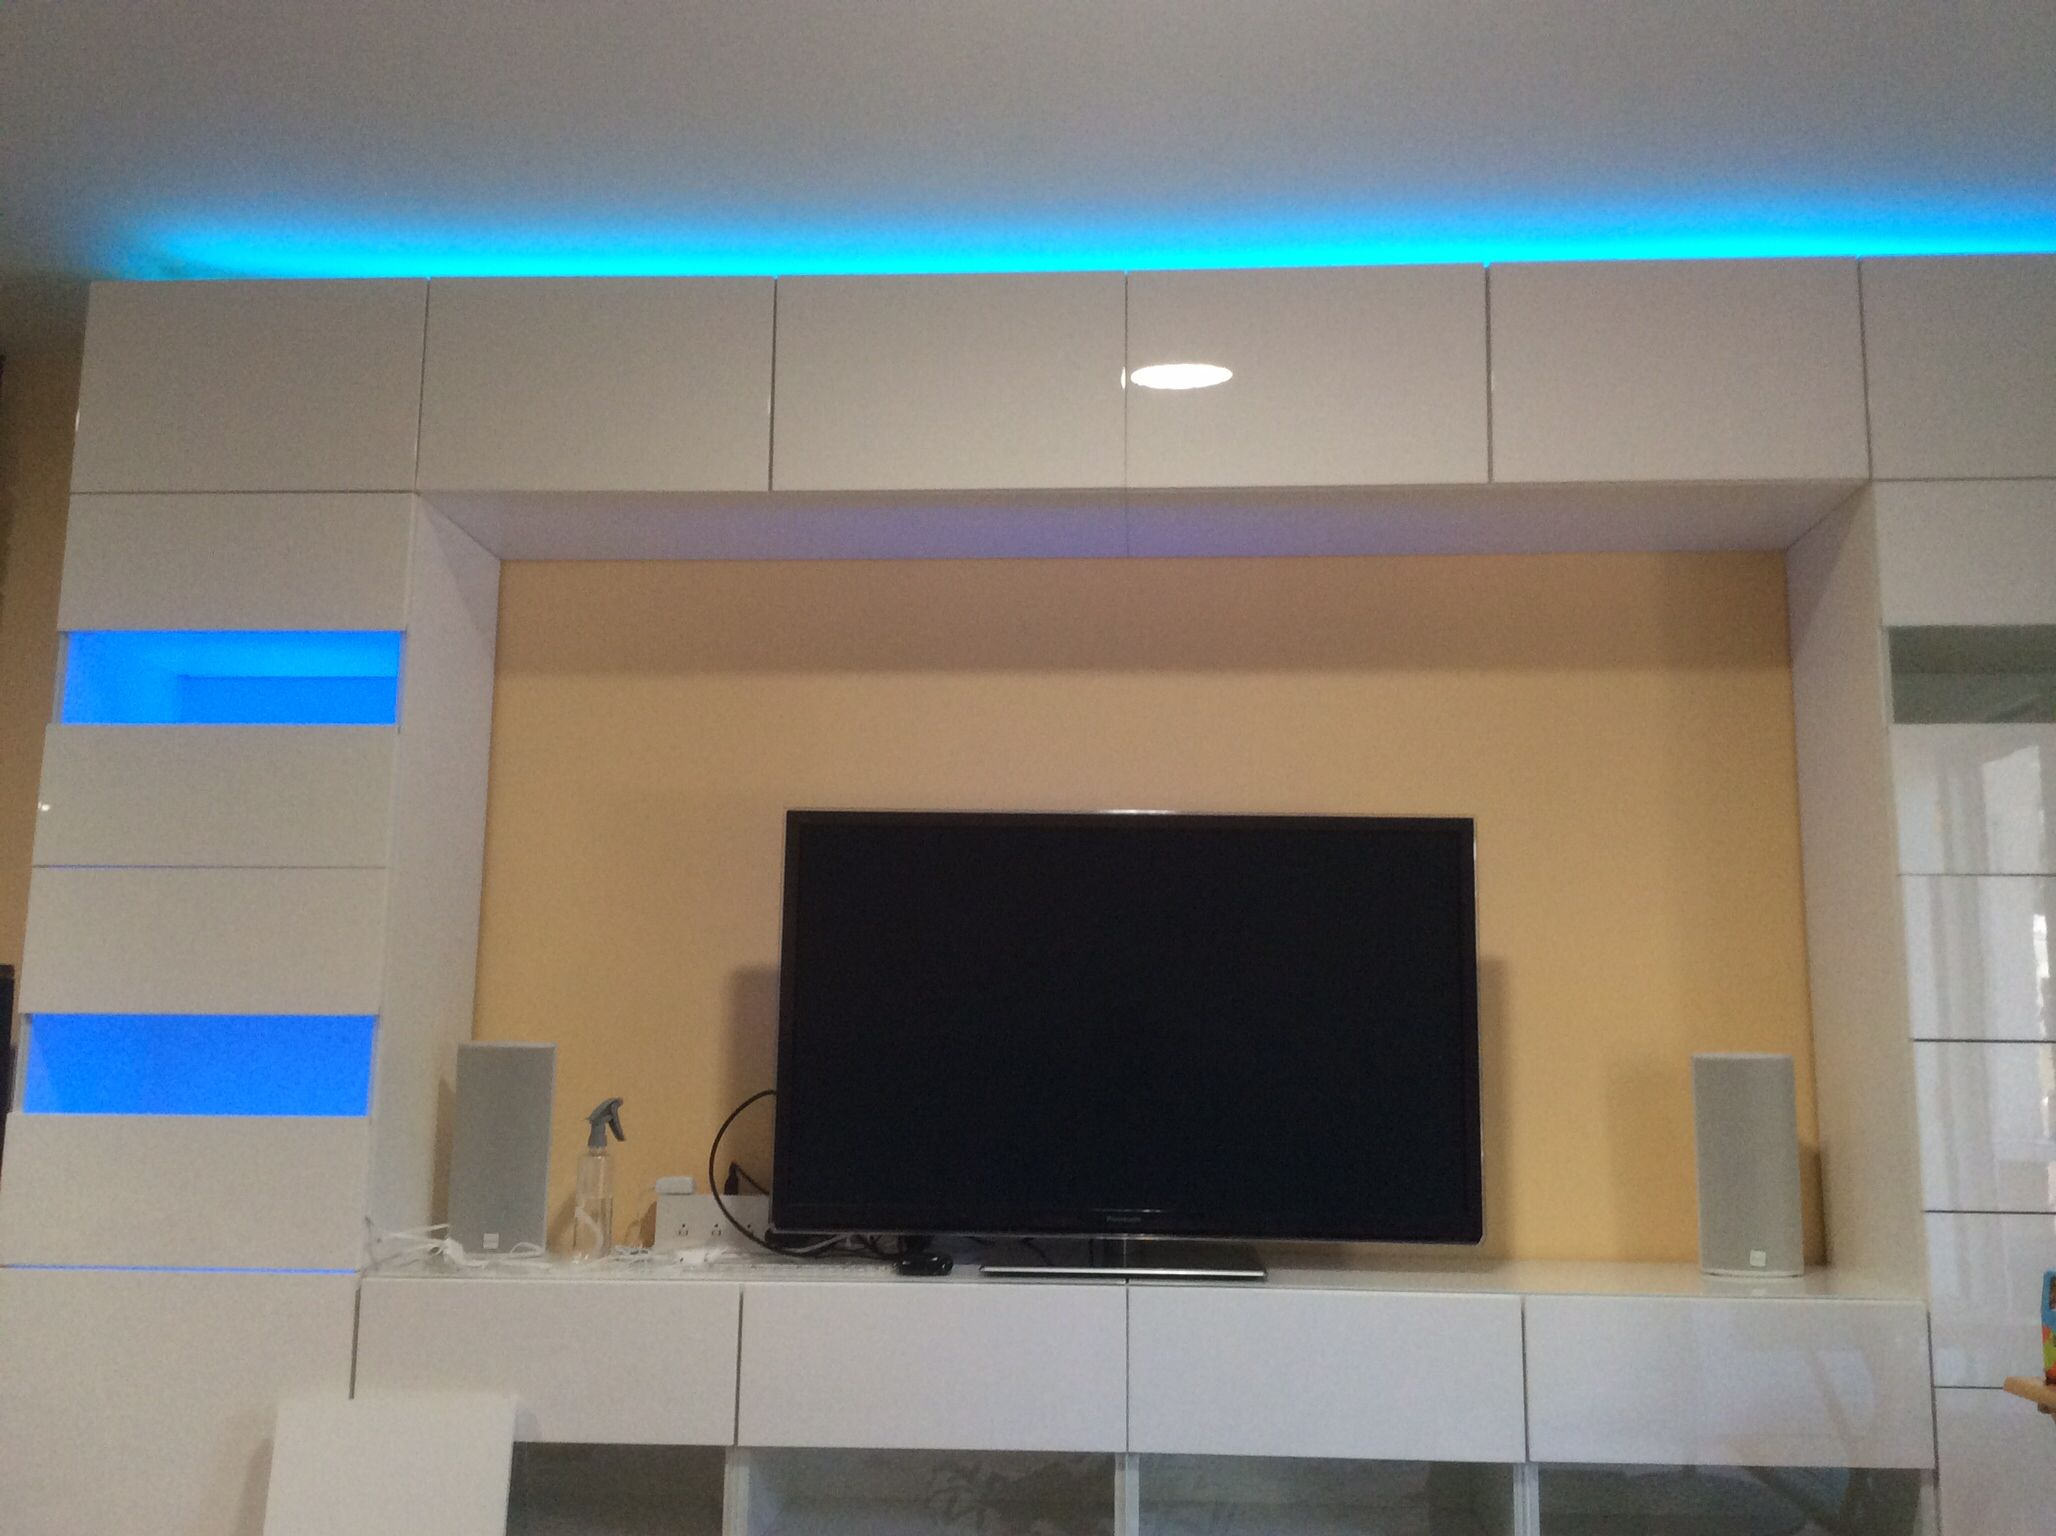 Ikea Besta Lighting: IKEA Besta Wall Unit. Doing A Bit Testing With The Help Of